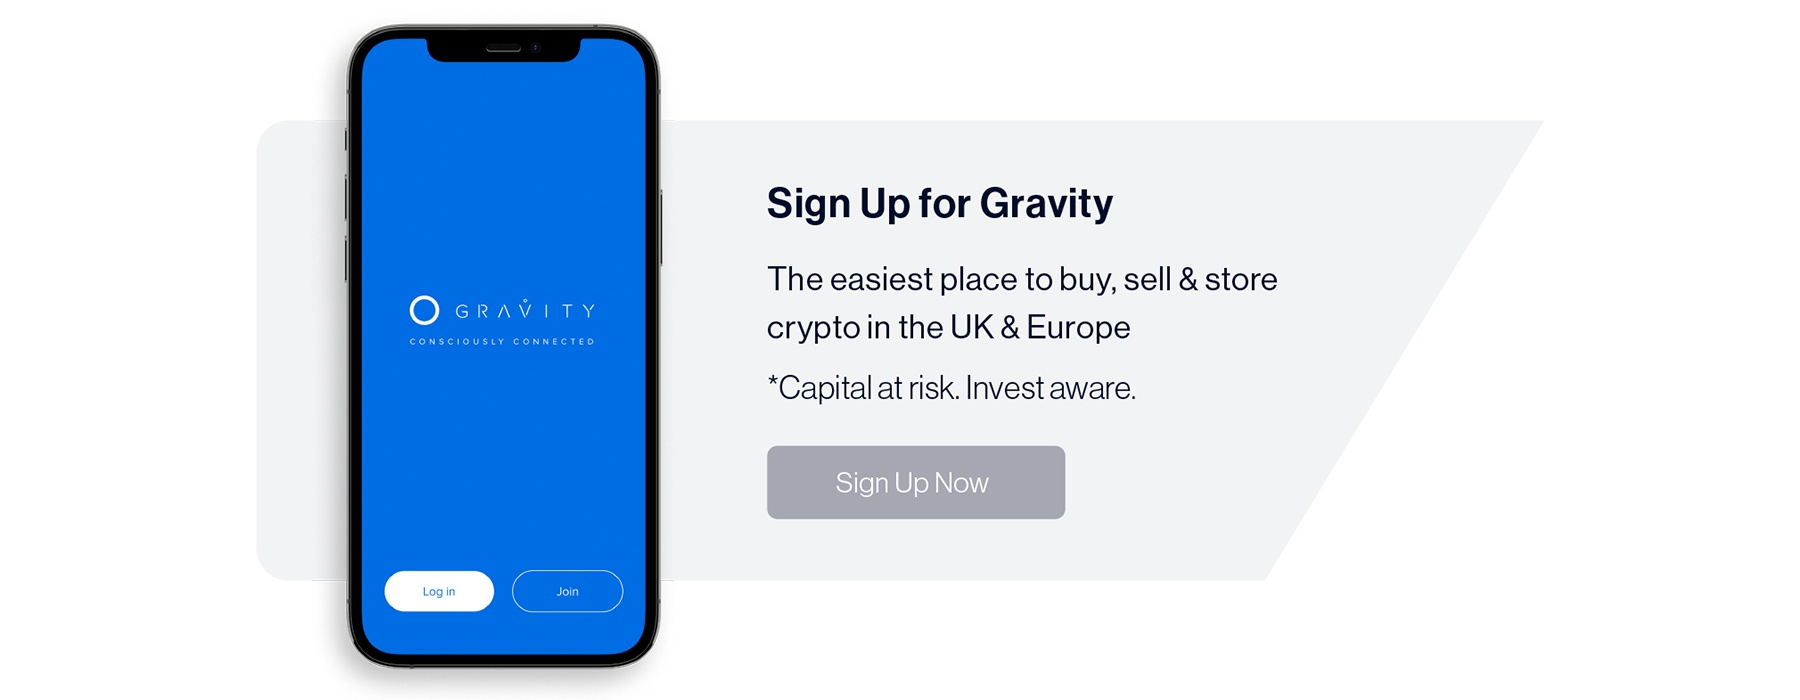 Sign up for Gravity